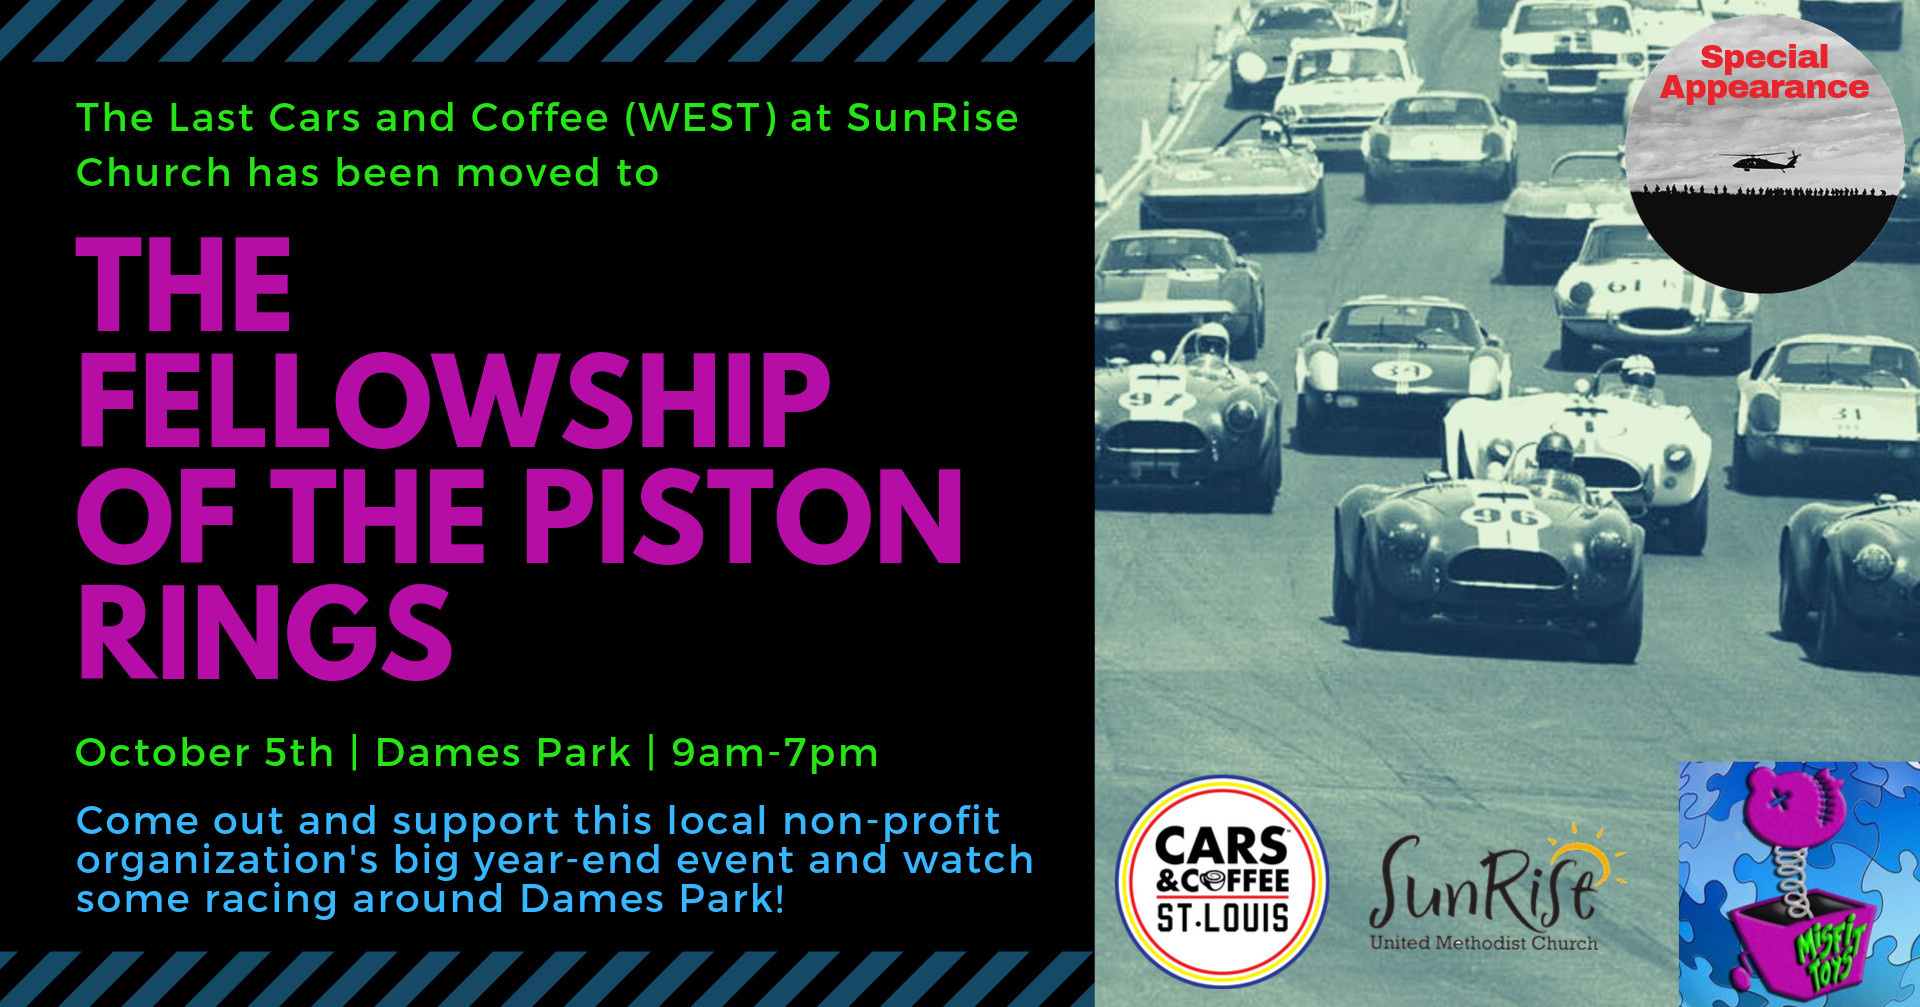 Cars and Coffee (WEST) at The Fellowship of Piston Rings